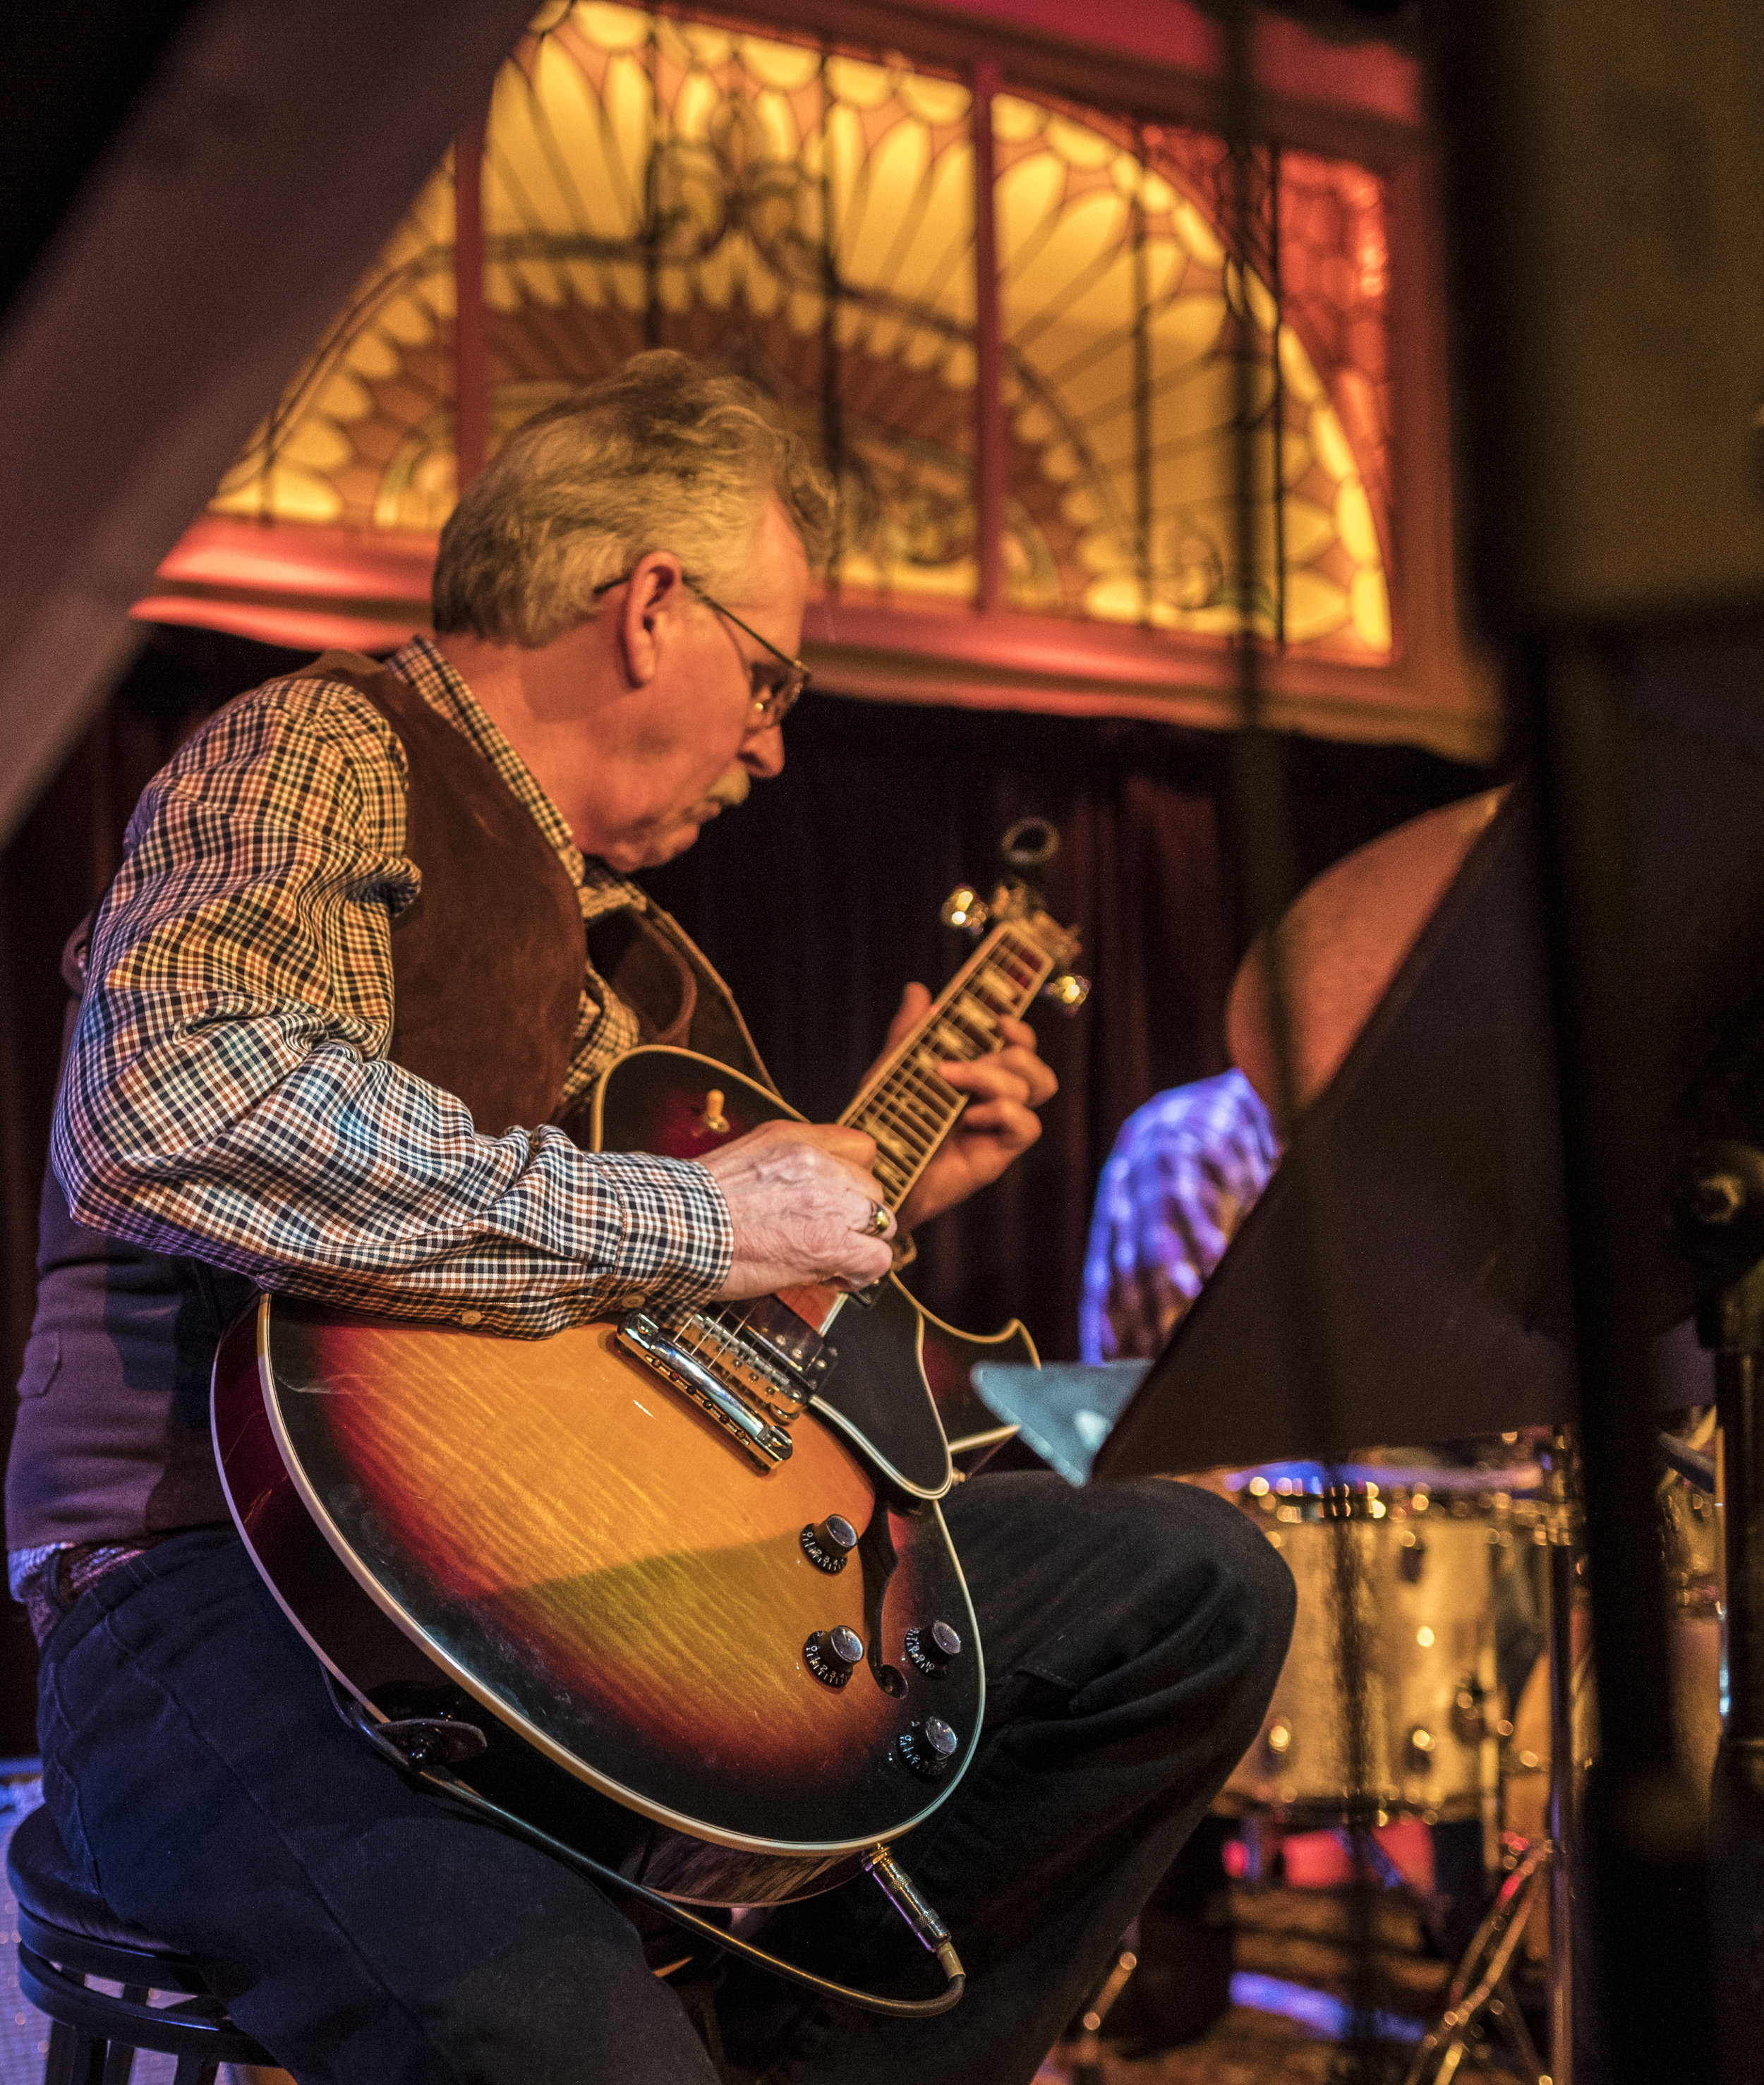 """Stacey Weick   His influences are:Carlos Santana, Eric Clapton, Kenny Burrell,Miles Davis and John Coltrane. Stacey raises horses, but we think he is a """"guitar-whisperer""""as well."""